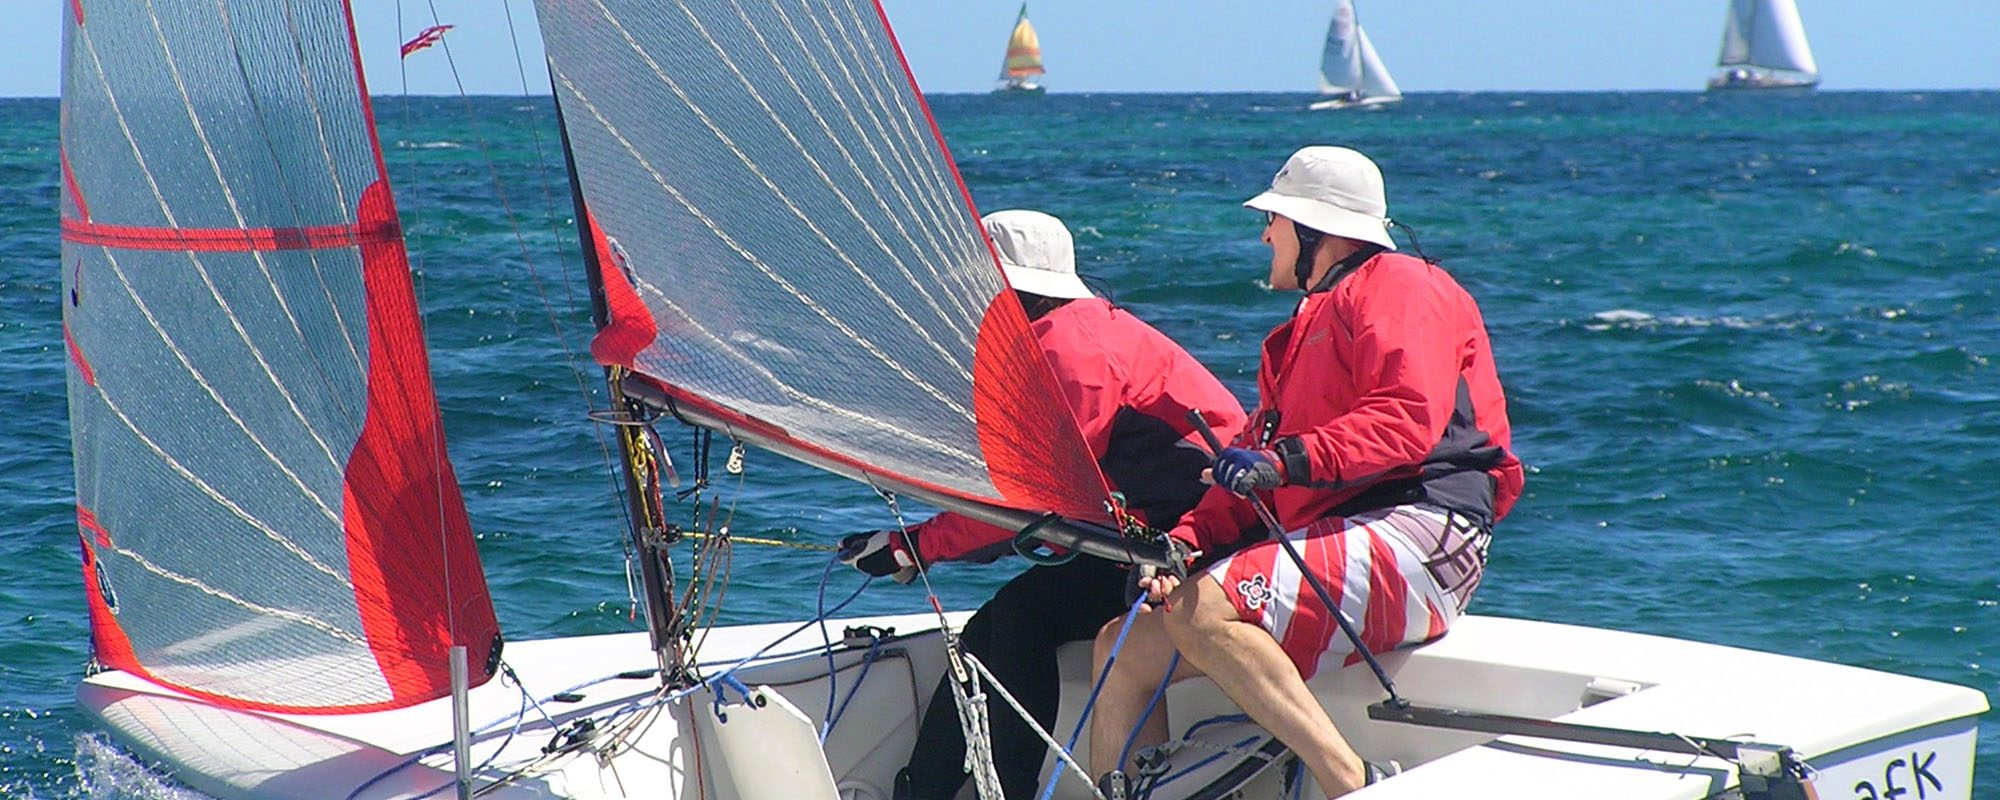 Somerton Yacht Club Sailing